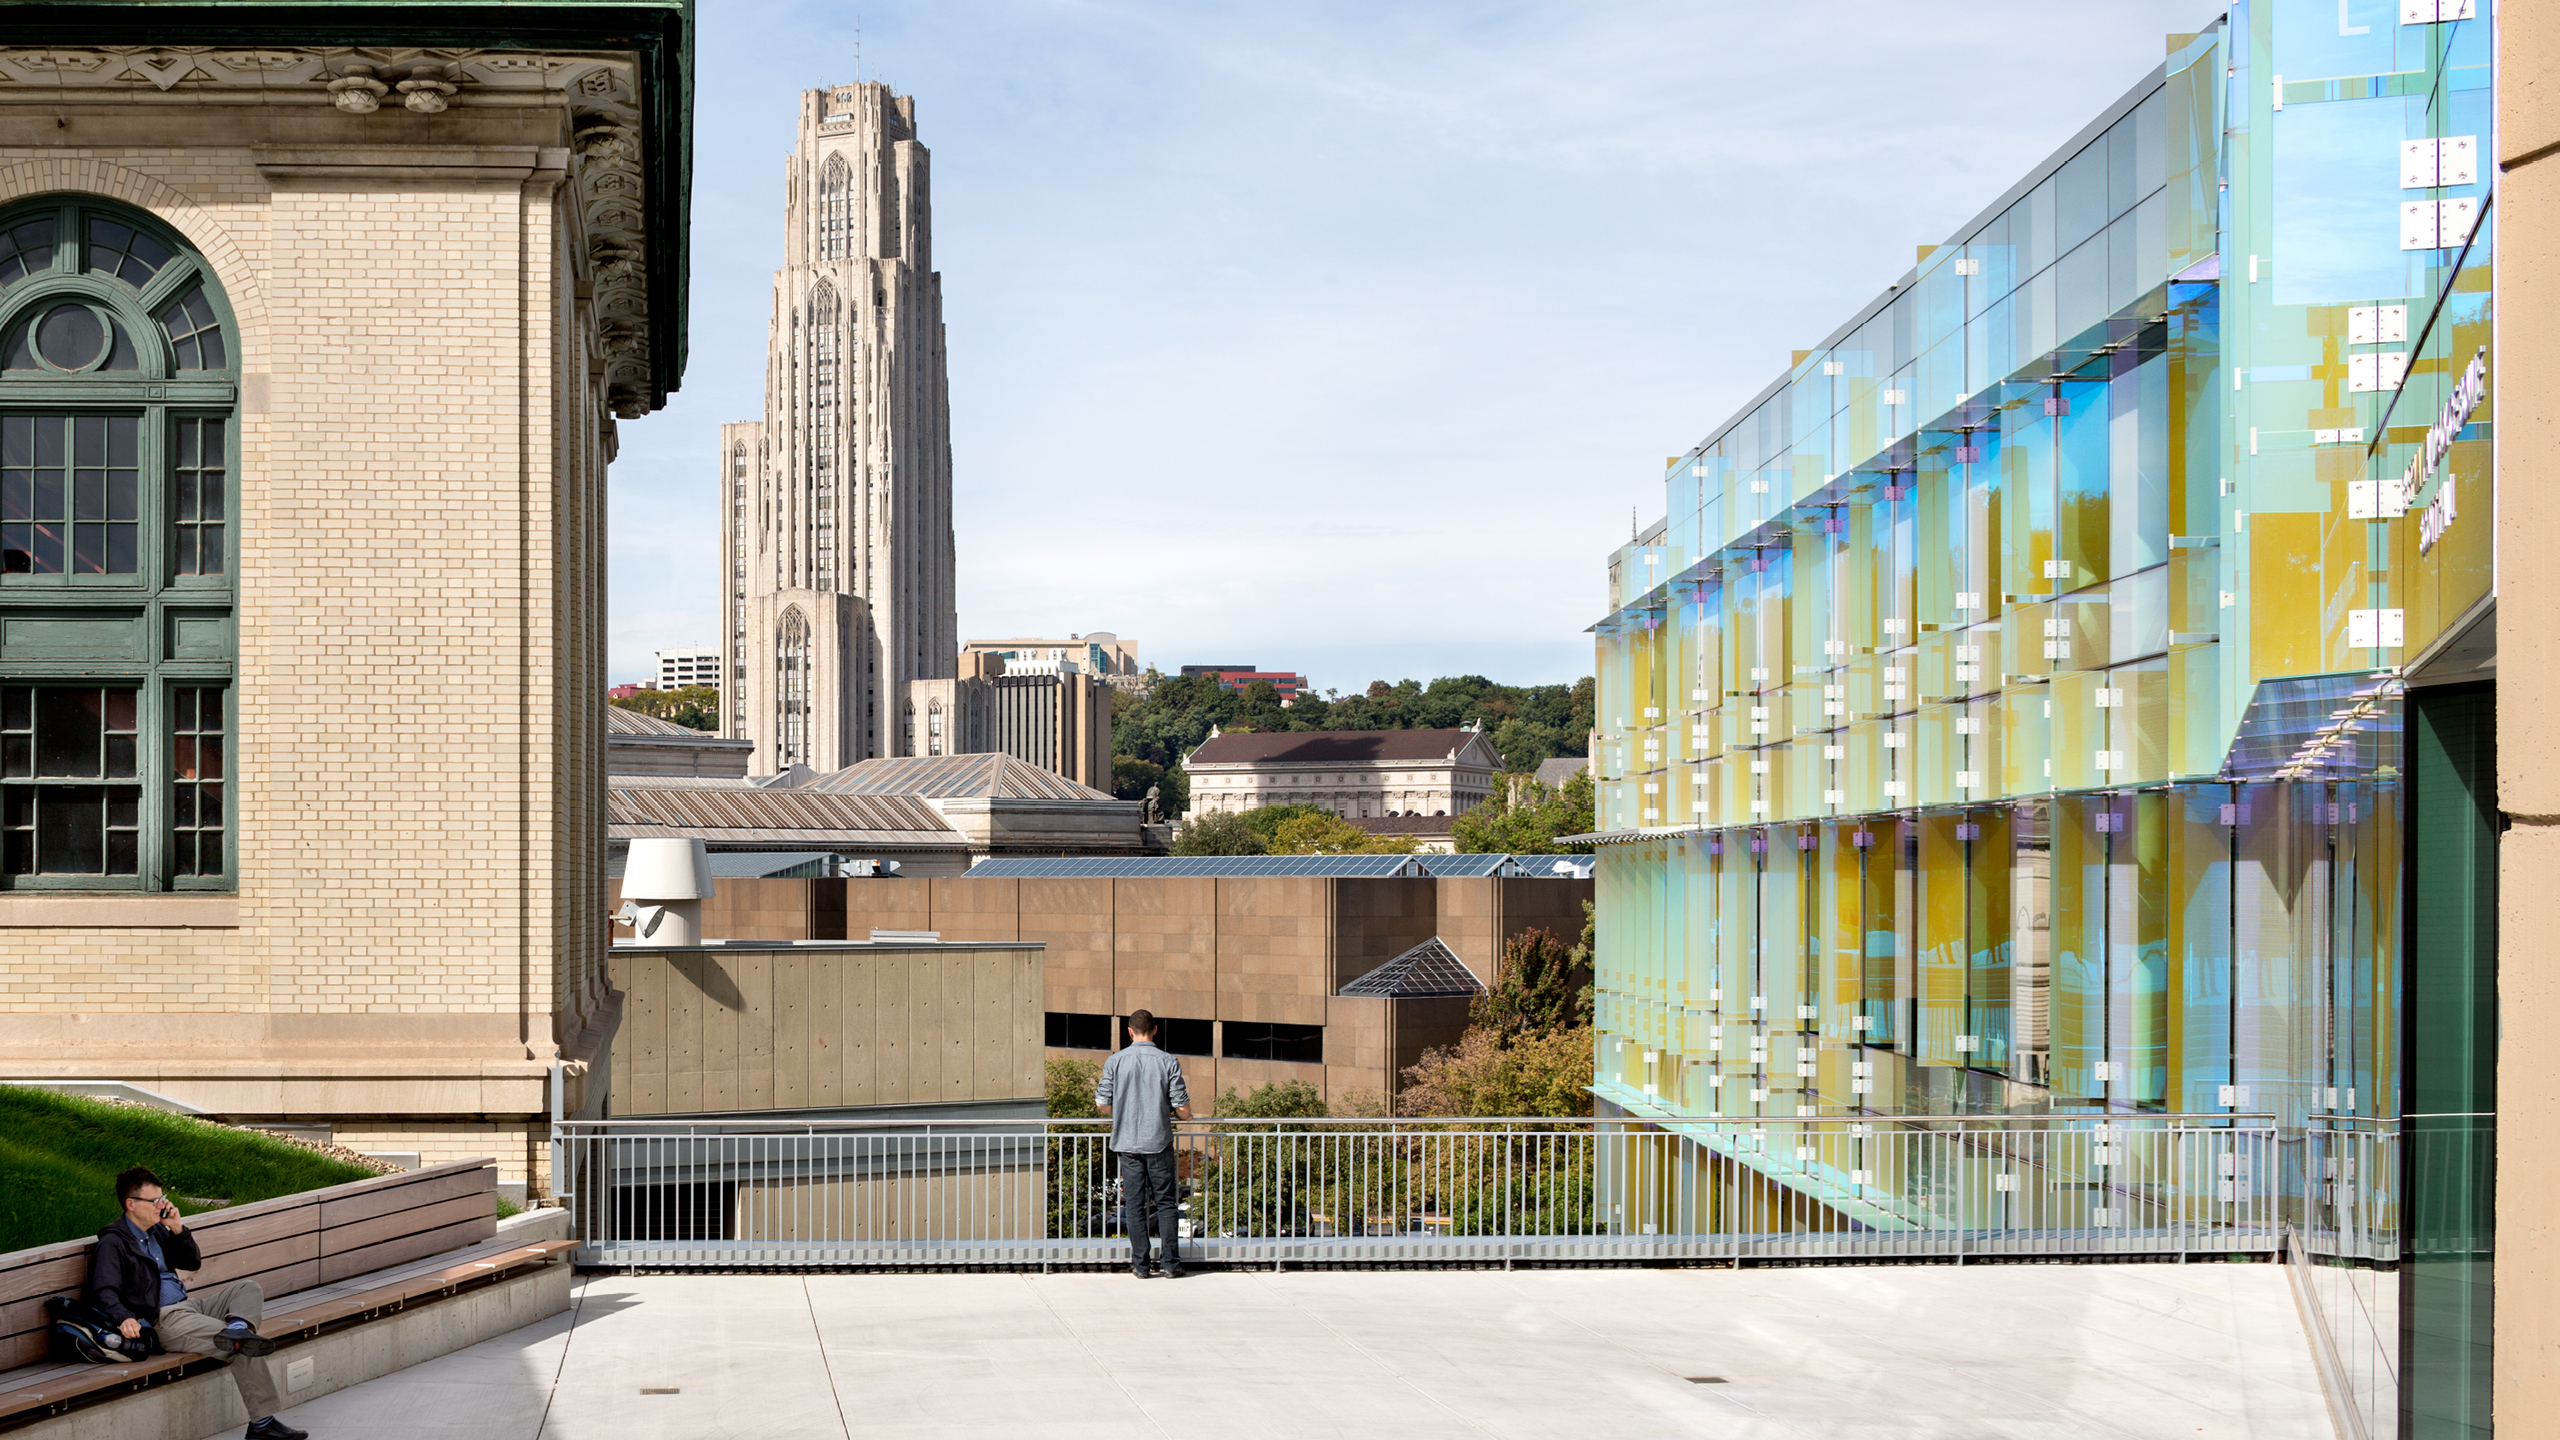 Scott Hall at Carnegie Mellon University / image 14